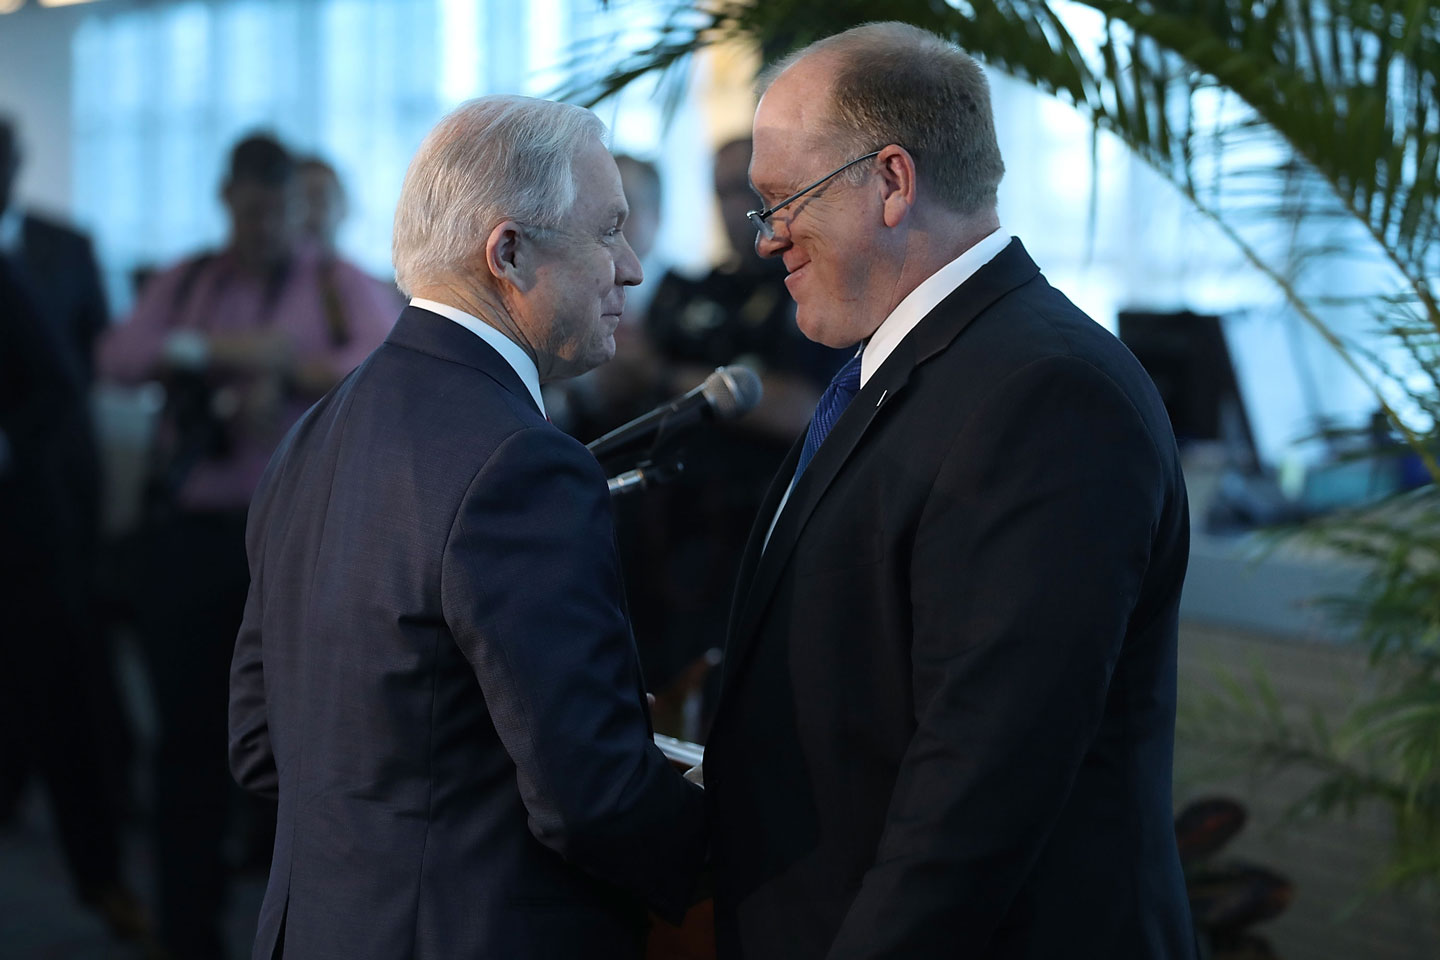 MIAMI, FL - AUGUST 16: U.S. Attorney General Jeff Sessions (L) is introduced by Acting Director Tom Homan, U.S. Immigration and Customs Enforcement before he speaks at PortMiami on what he said is a growing trend of violent crime in sanctuary cities on August 16, 2017 in Miami, Florida. The speech highlighted jurisdictions like Miami-Dade that Mr. Sessions told the audience have increased their cooperation and information sharing with federal immigration authorities and have demonstrated a fundamental commitment to the rule of law and lowering violent crime. (Photo by Joe Raedle/Getty Images)